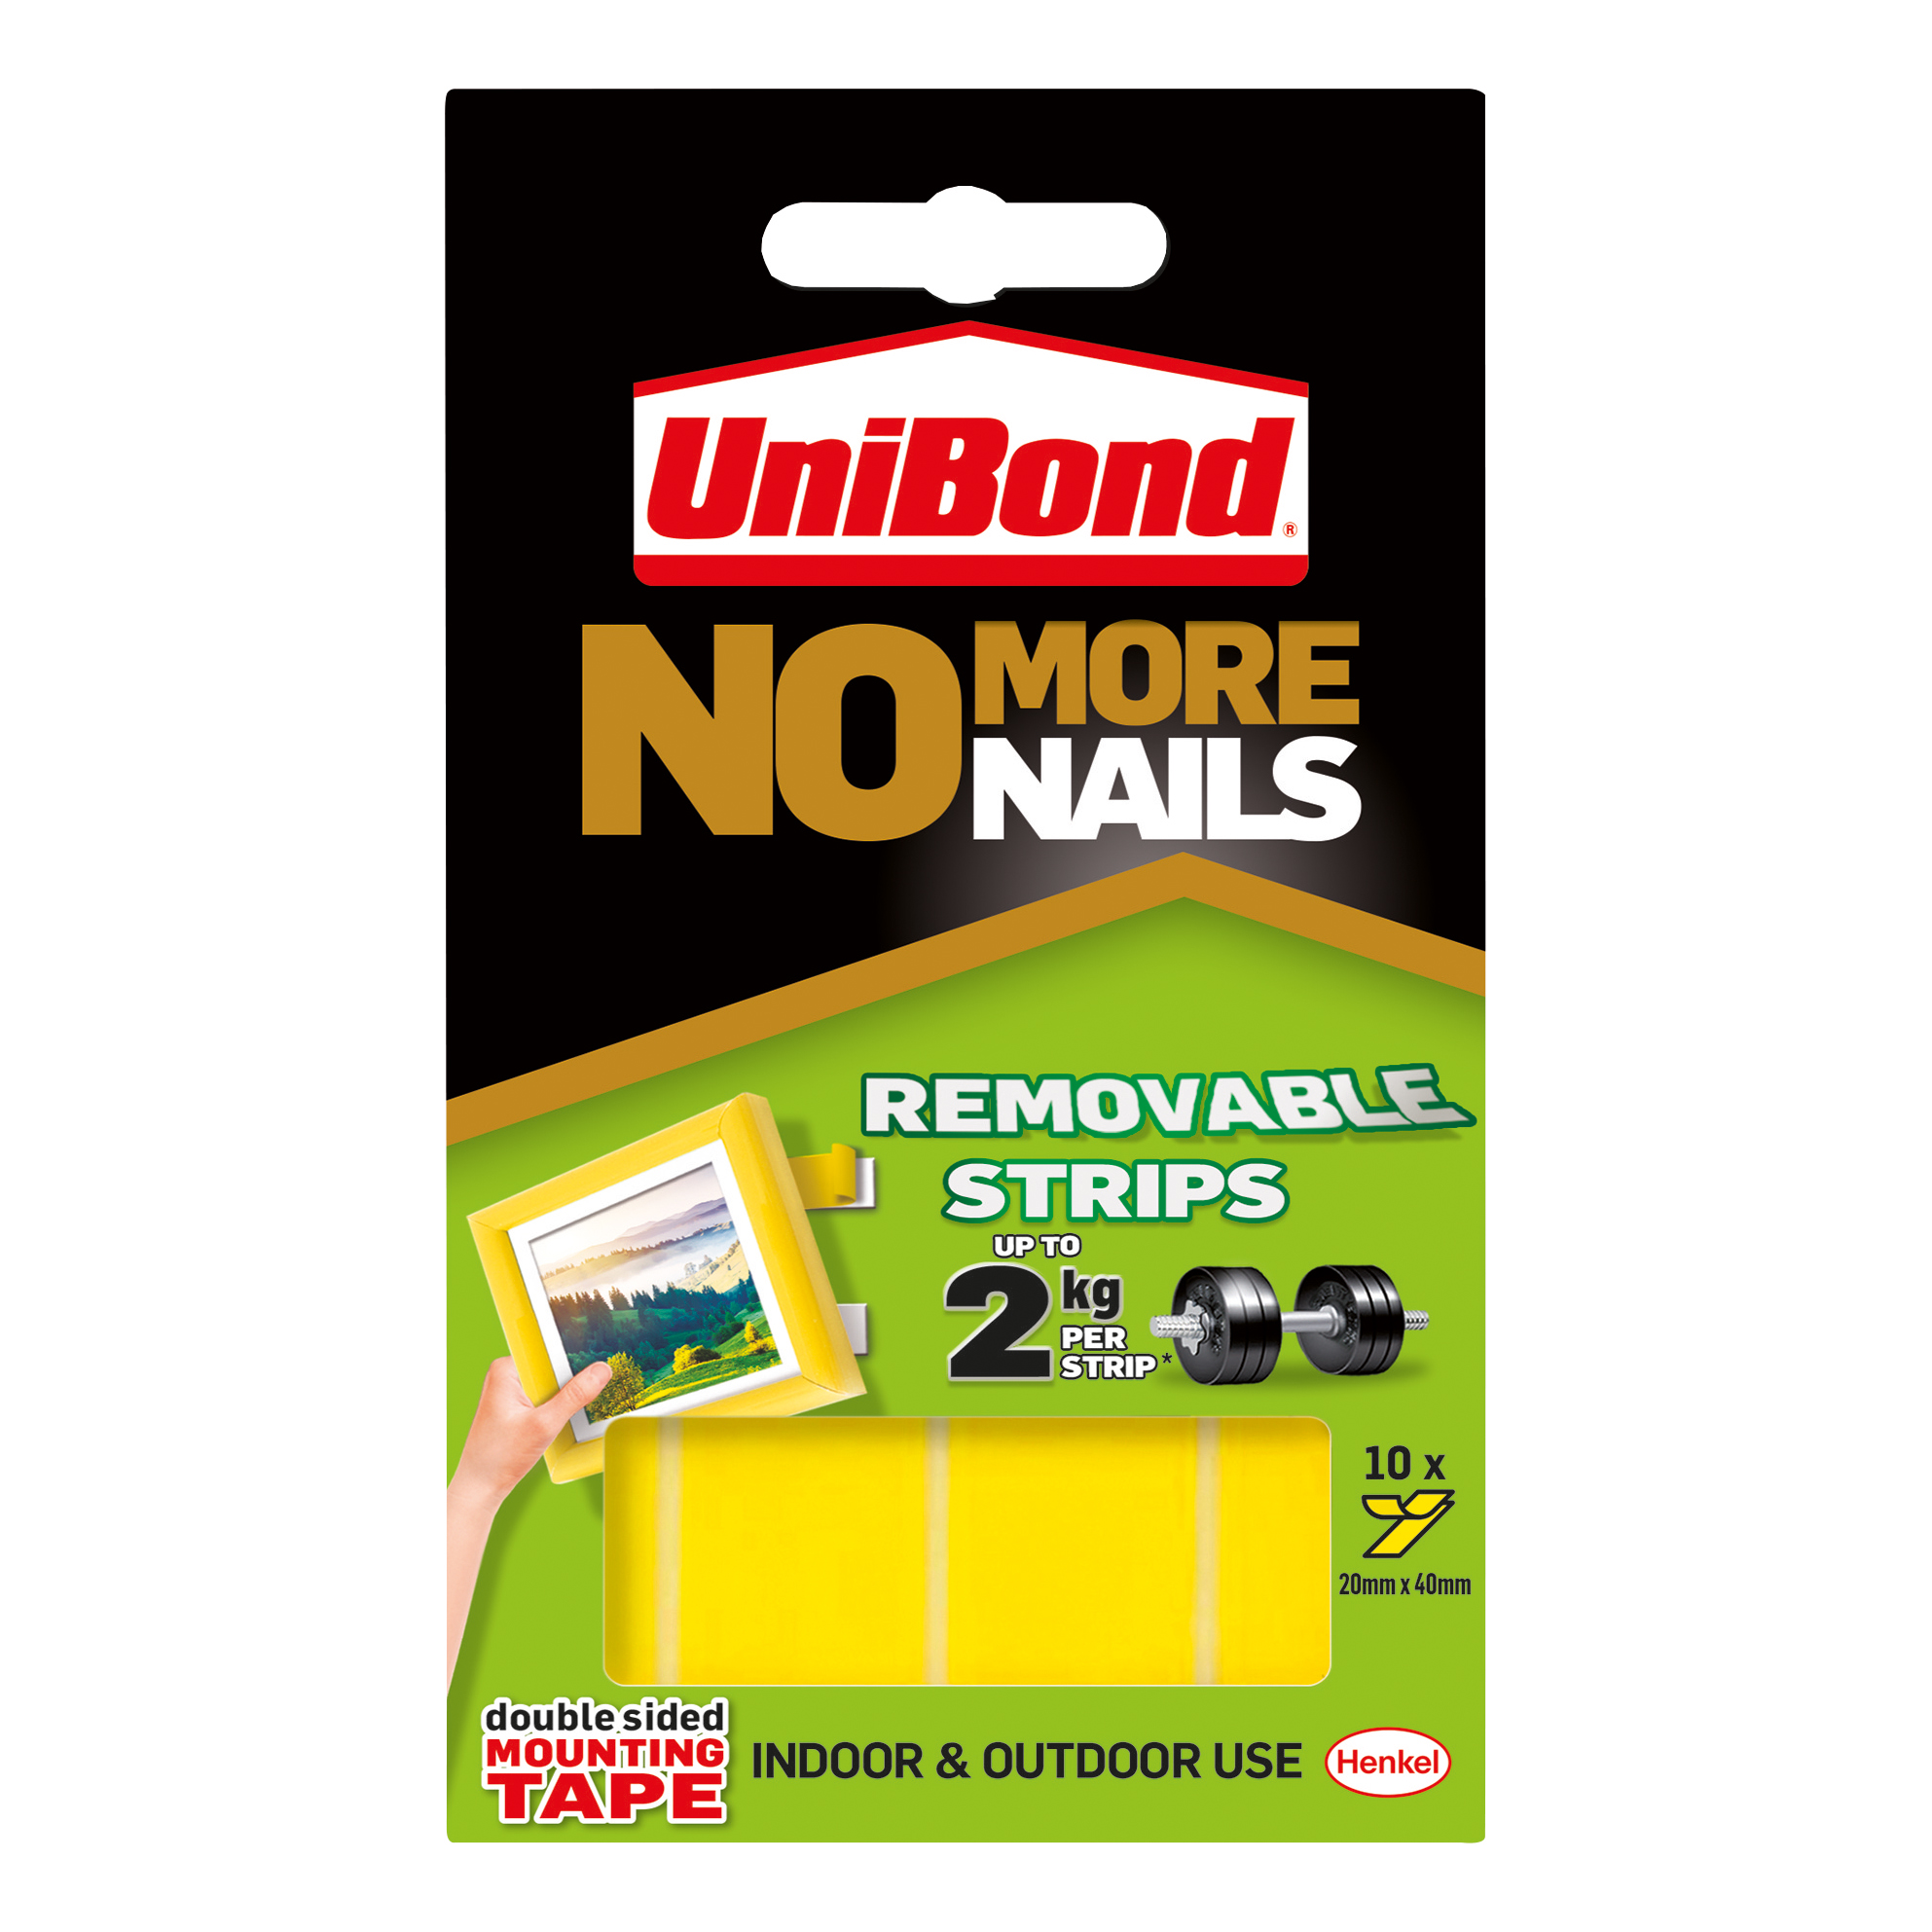 Unibond No More Nails Strip Ultra-strong Removable Translucent Ref 781739 Pack 10